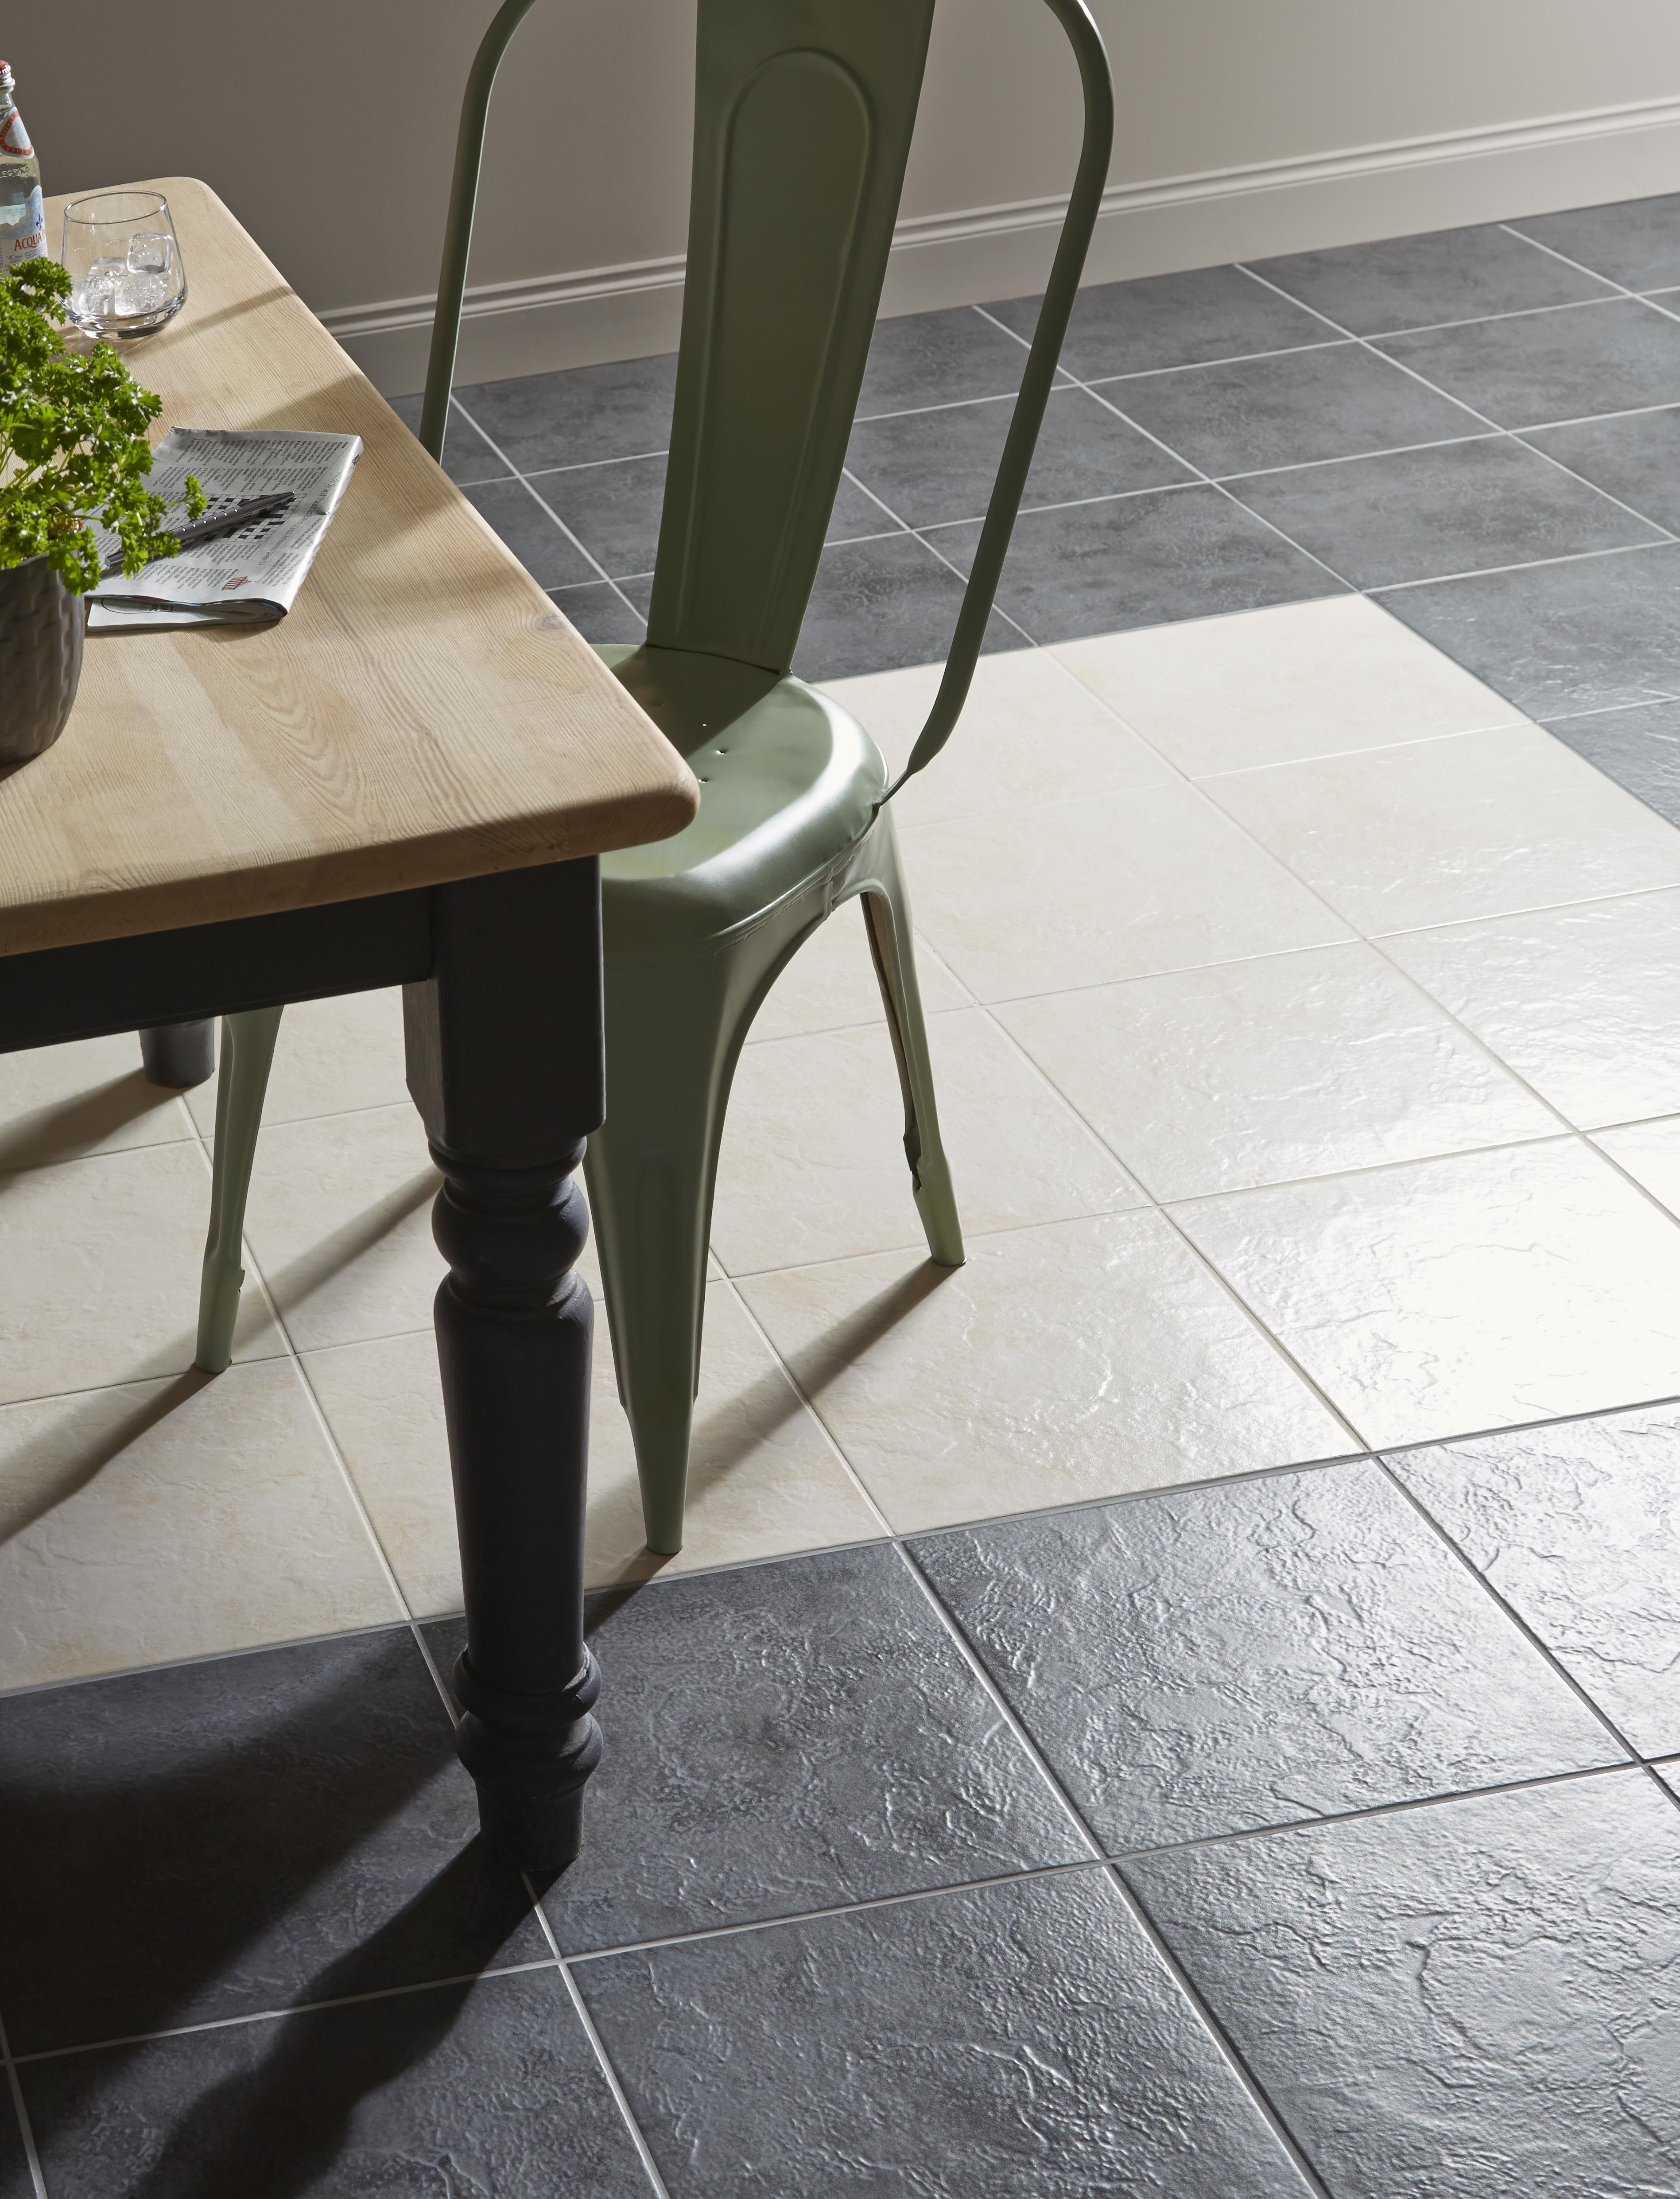 Haver chalk stone effect travertine ceramic wall floor tile a floor tile thats hard wearing easy to clean and textured the cirque dailygadgetfo Gallery